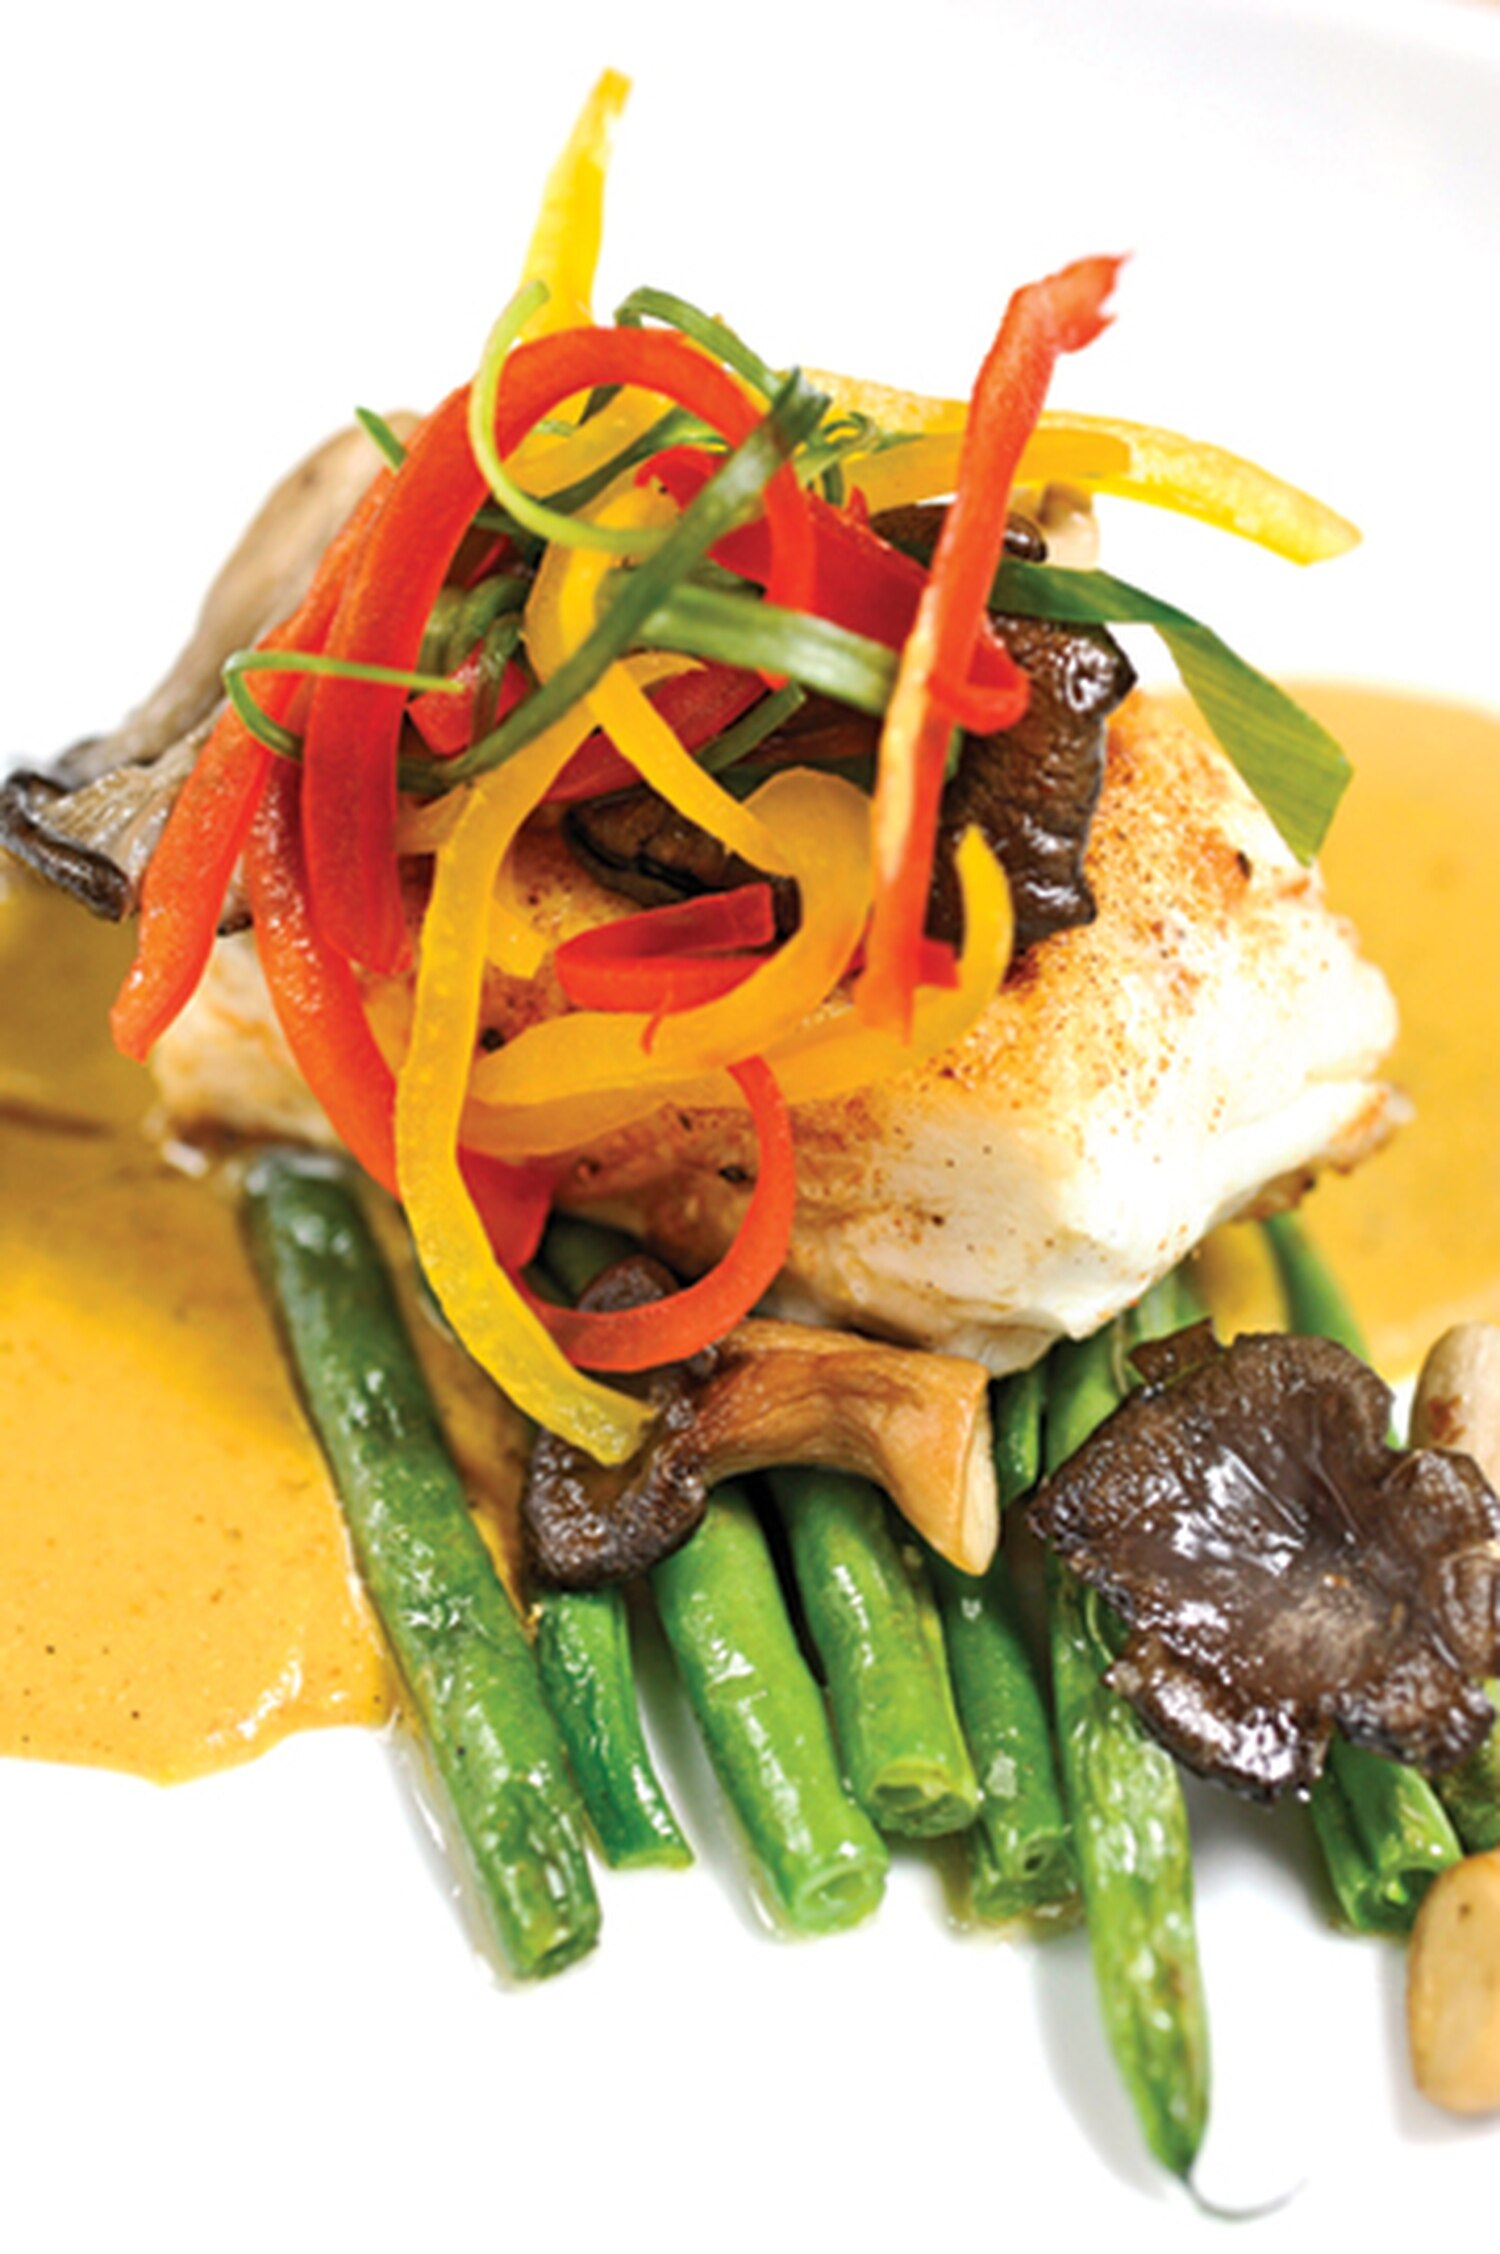 """Halibut en salsa de mole amarillo, with pan-seared halibut, sautéed oyster mushrooms, green beans, mango-yellow bell pepper and white chocolate mole. 125 Lincoln Ave., Ste. 117, 988-7102 Lunch and dinner daily Taberna Remember the last three times that you tried octopus? Forget them. Among the small plates at one of Santa Fe's original tapas joints is pulpo, braised octopus carpaccio with lemon juice, pimentón and olive oil ($13). The thin slices of fish get rid of the rubber-band memories and replace them with, """"Oh yeah, we ate that."""" Dependably terrific alcachofas, the artichokes wrapped in grilled jamón serrano with basil piñón pesto and goat cheese are all you really need in a vegetable ($15). Then, when your visit moves more in the dinner direction, we recommend the pair of tortita sliders made from braised short ribs with a sweet and tangy guava barbecue sauce and cabbage slaw ($12) and the tacos de robalo, generous helpings of fried barramundi with serrano peppers and all the fixings. On the side is a fire-hot habanero peanut sauce that will make your fancy port taste even more rich and decadent. Hit up this restaurant's outdoor seating, equipped with pole-mounted heaters to take maximum advantage of the bricked-in courtyard every season. -JAG"""